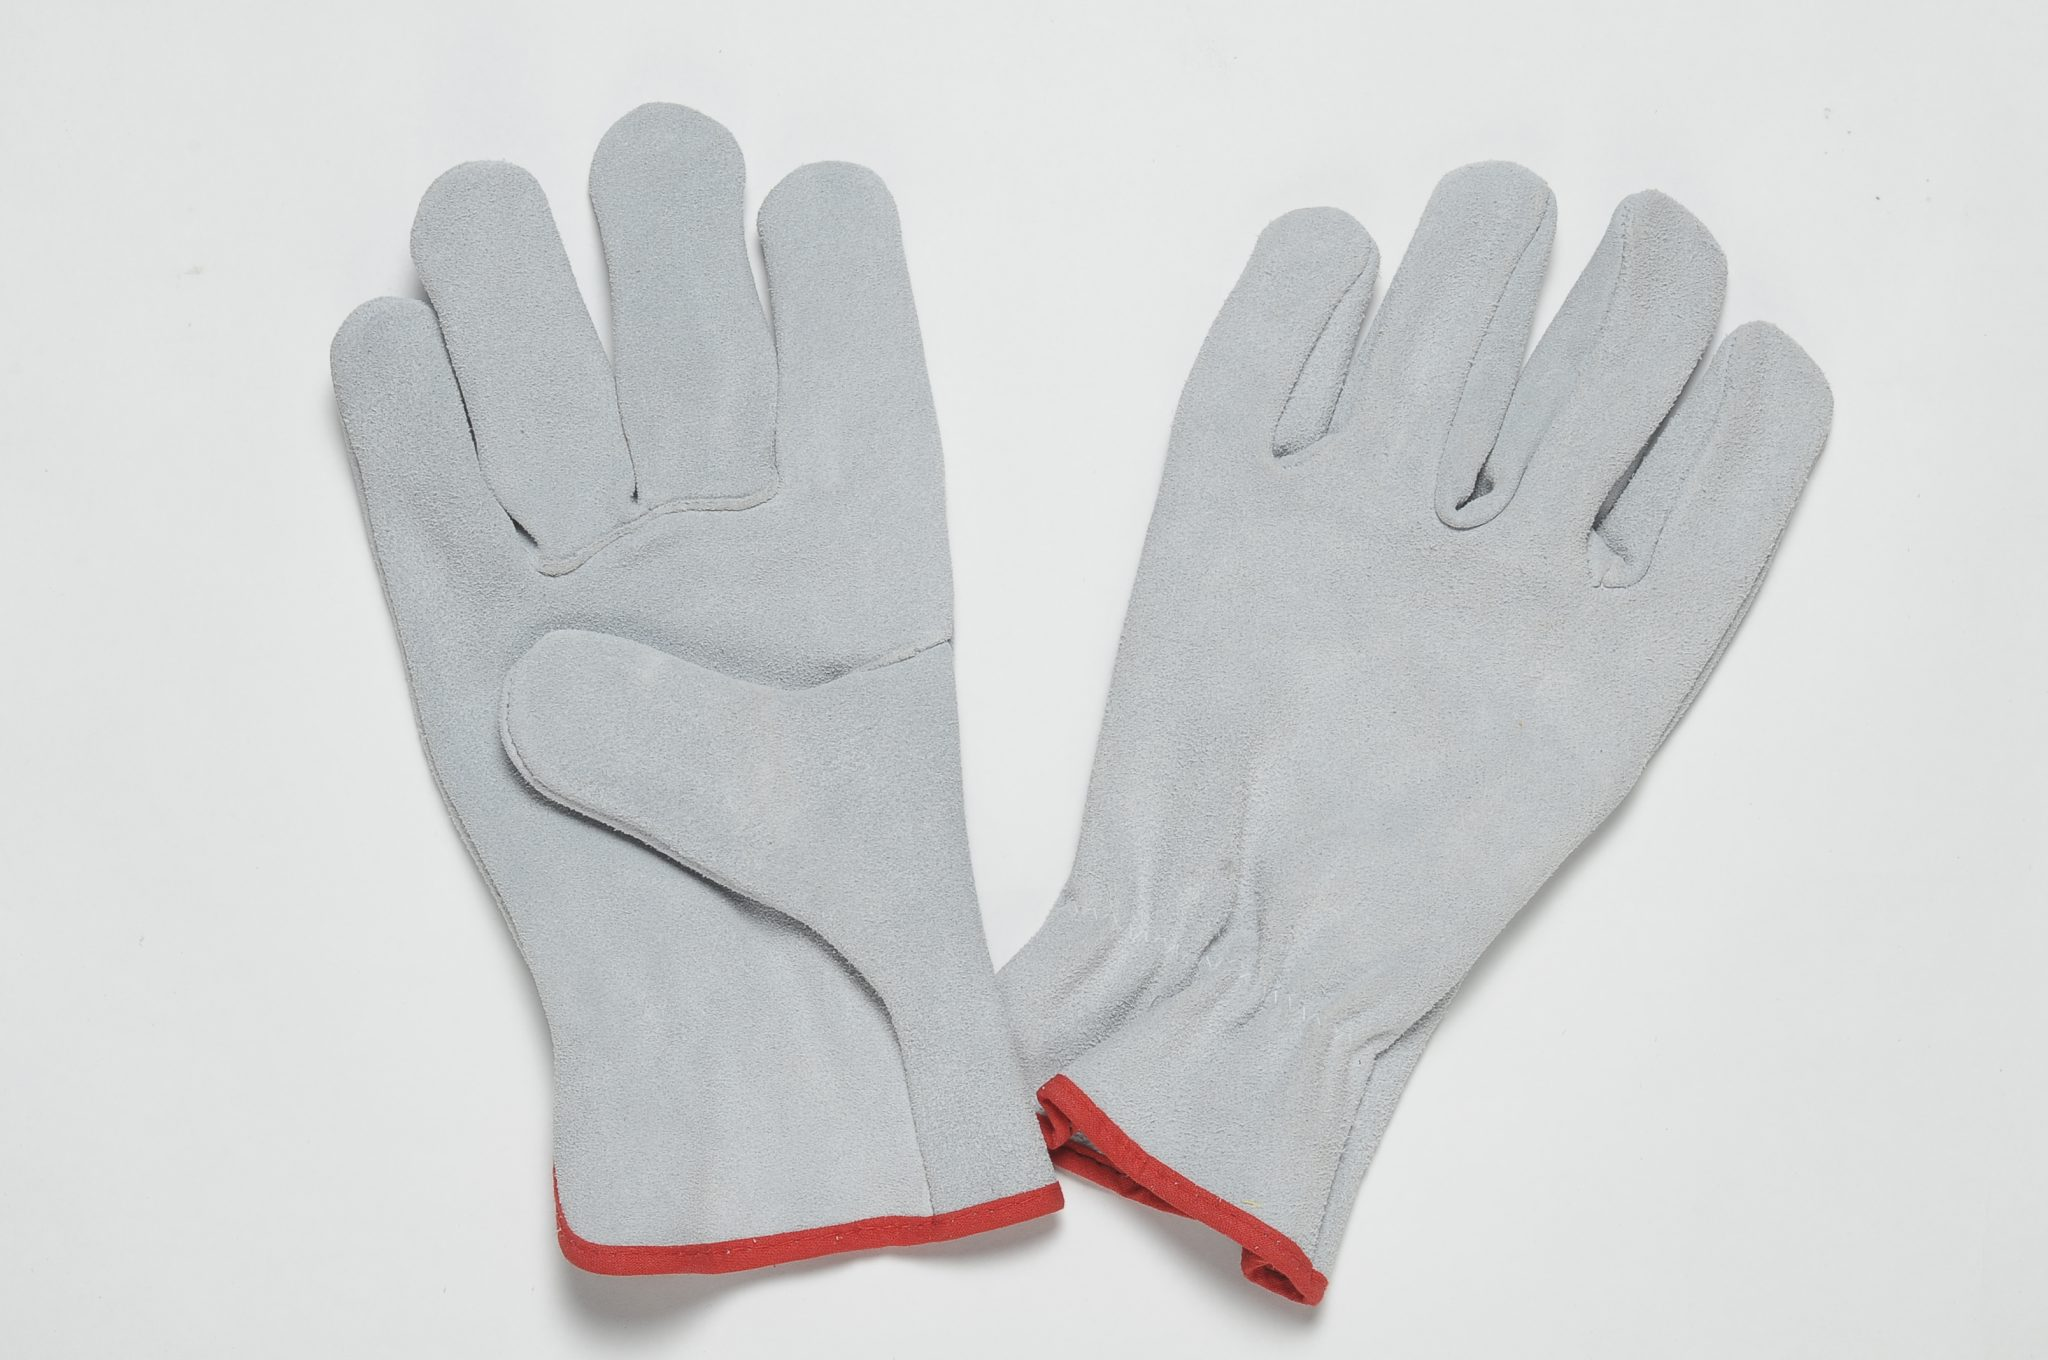 NATURAL SPLIT GLOVES WITH ADJUSTABLE ELASTIC IN THE WRIST, COLOURED BINDING